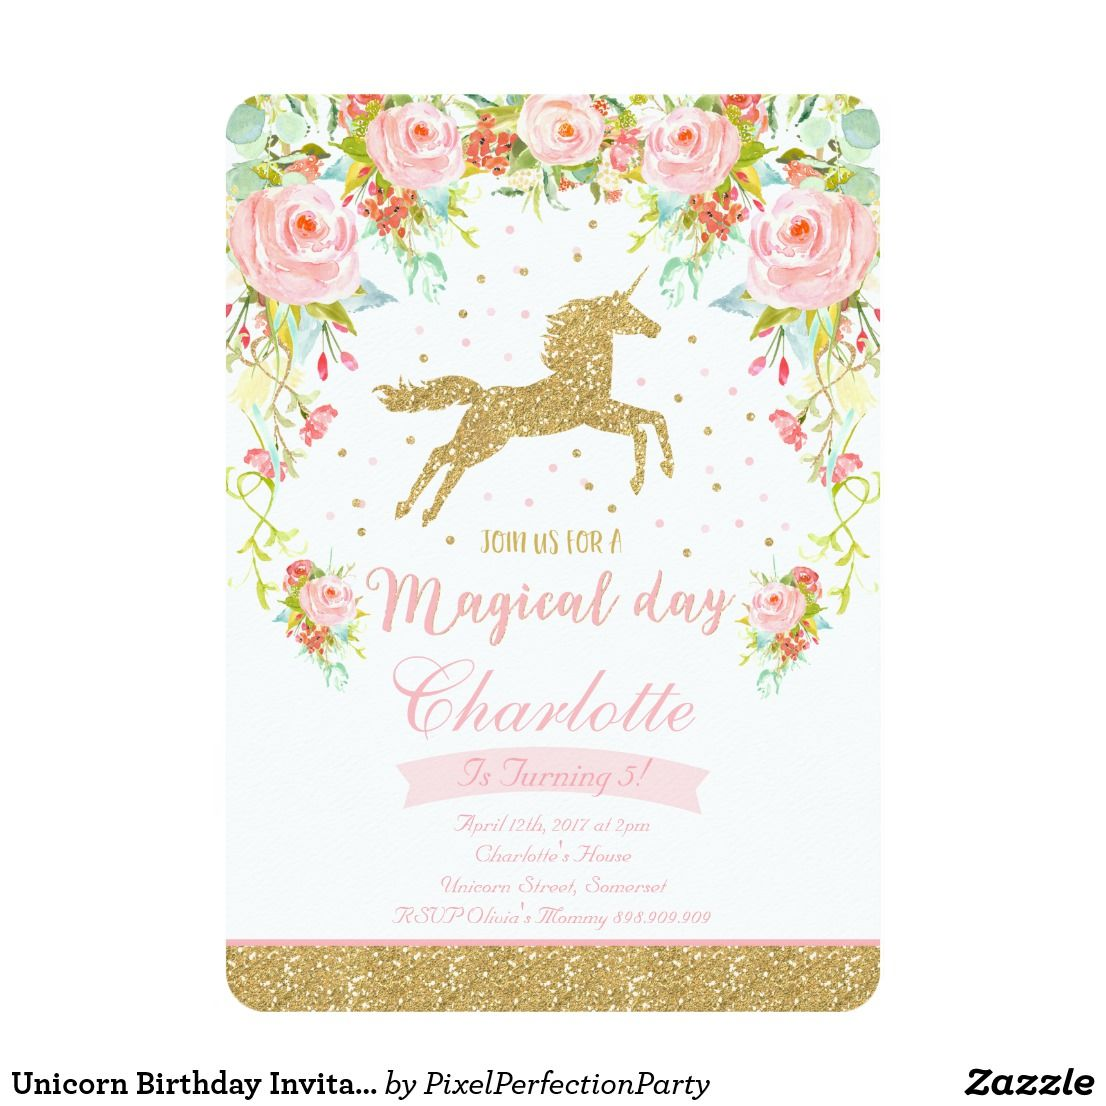 Unicorn birthday invitation pink gold unicorn unicrnio e aniversrio unicorn birthday invitation pink gold unicorn stopboris Images